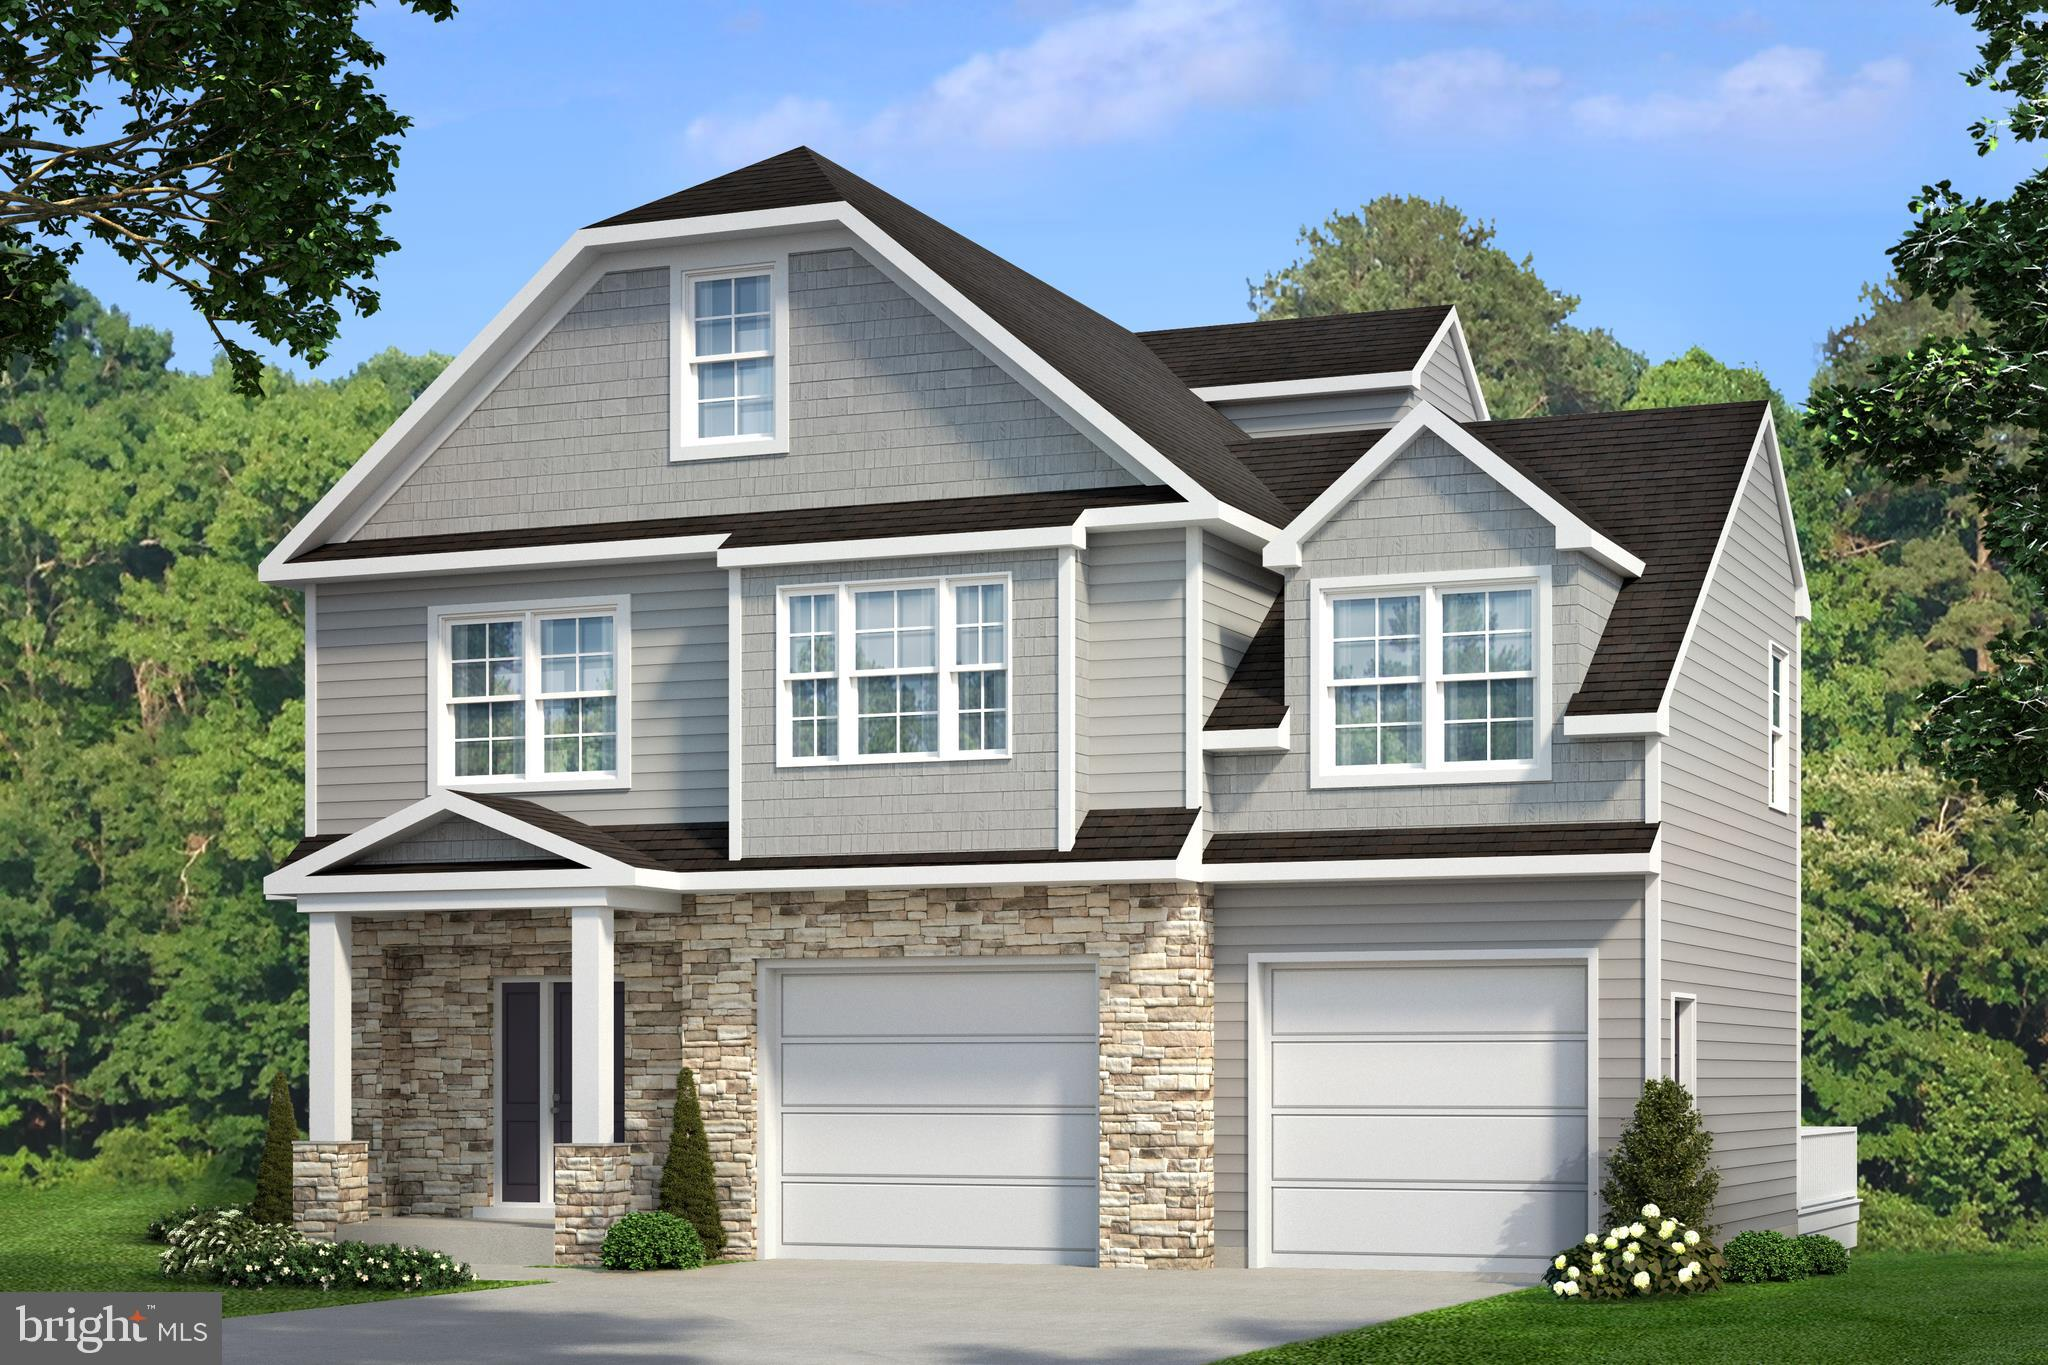 Lot 1 HALLOWELL ROAD, PLYMOUTH MEETING, PA 19462